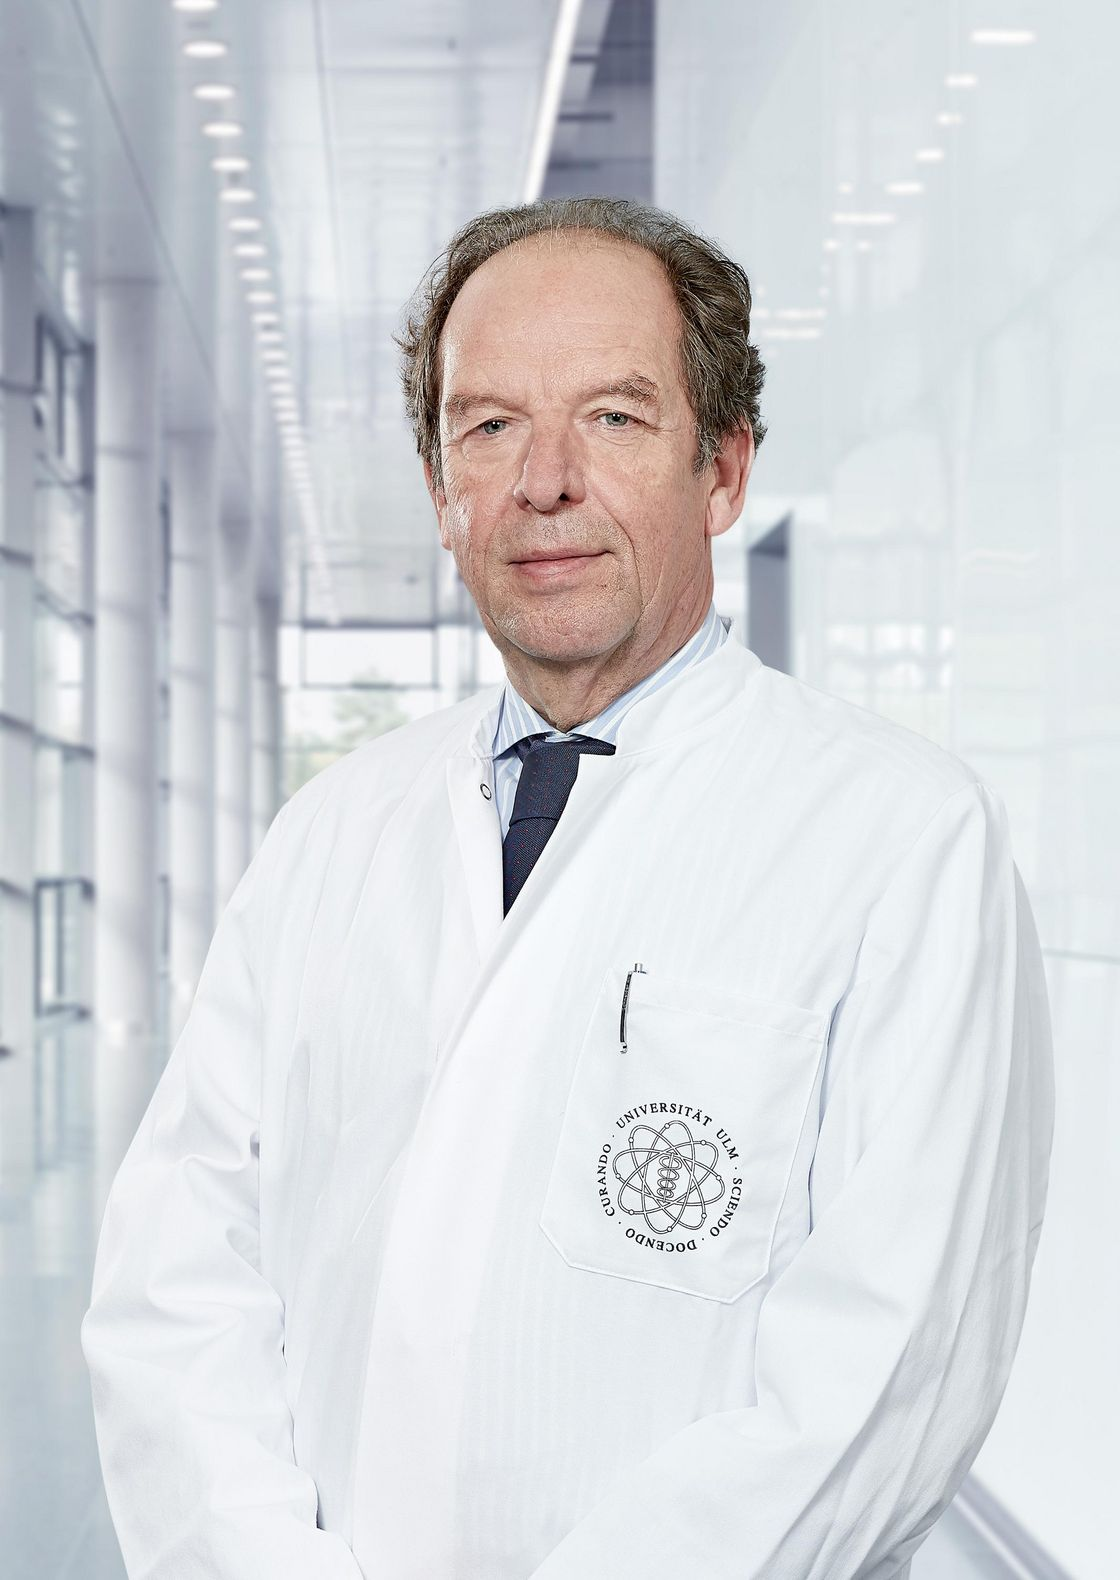 Photo of Prof. Klaus-Michael Debatin standing in a corridor of the hospital